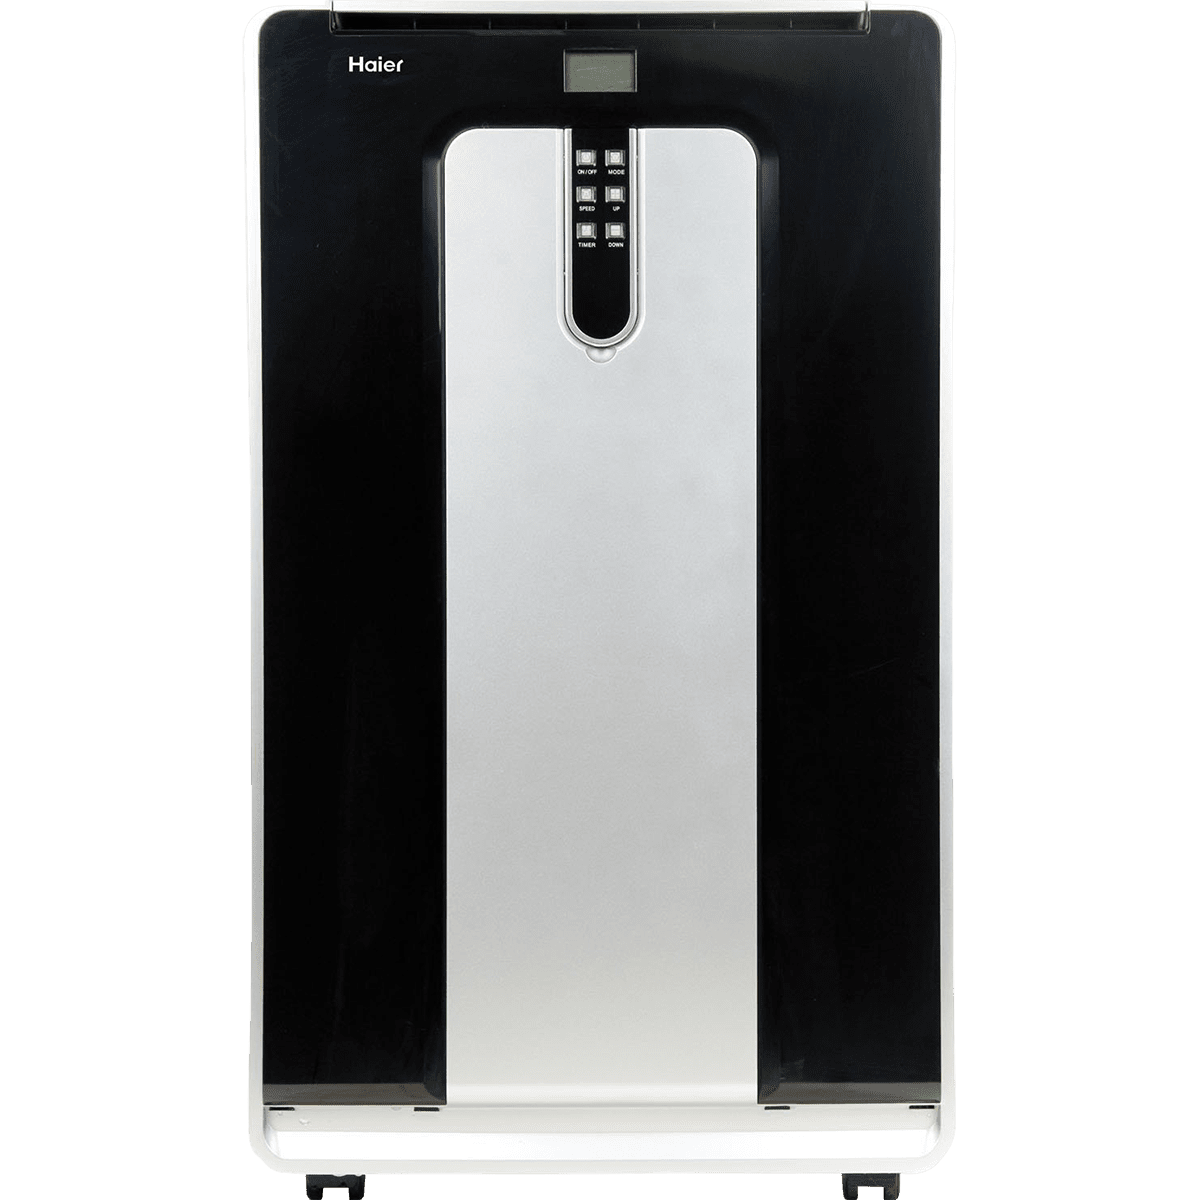 Haier HPN12XCM Portable Air Conditioner ha5704